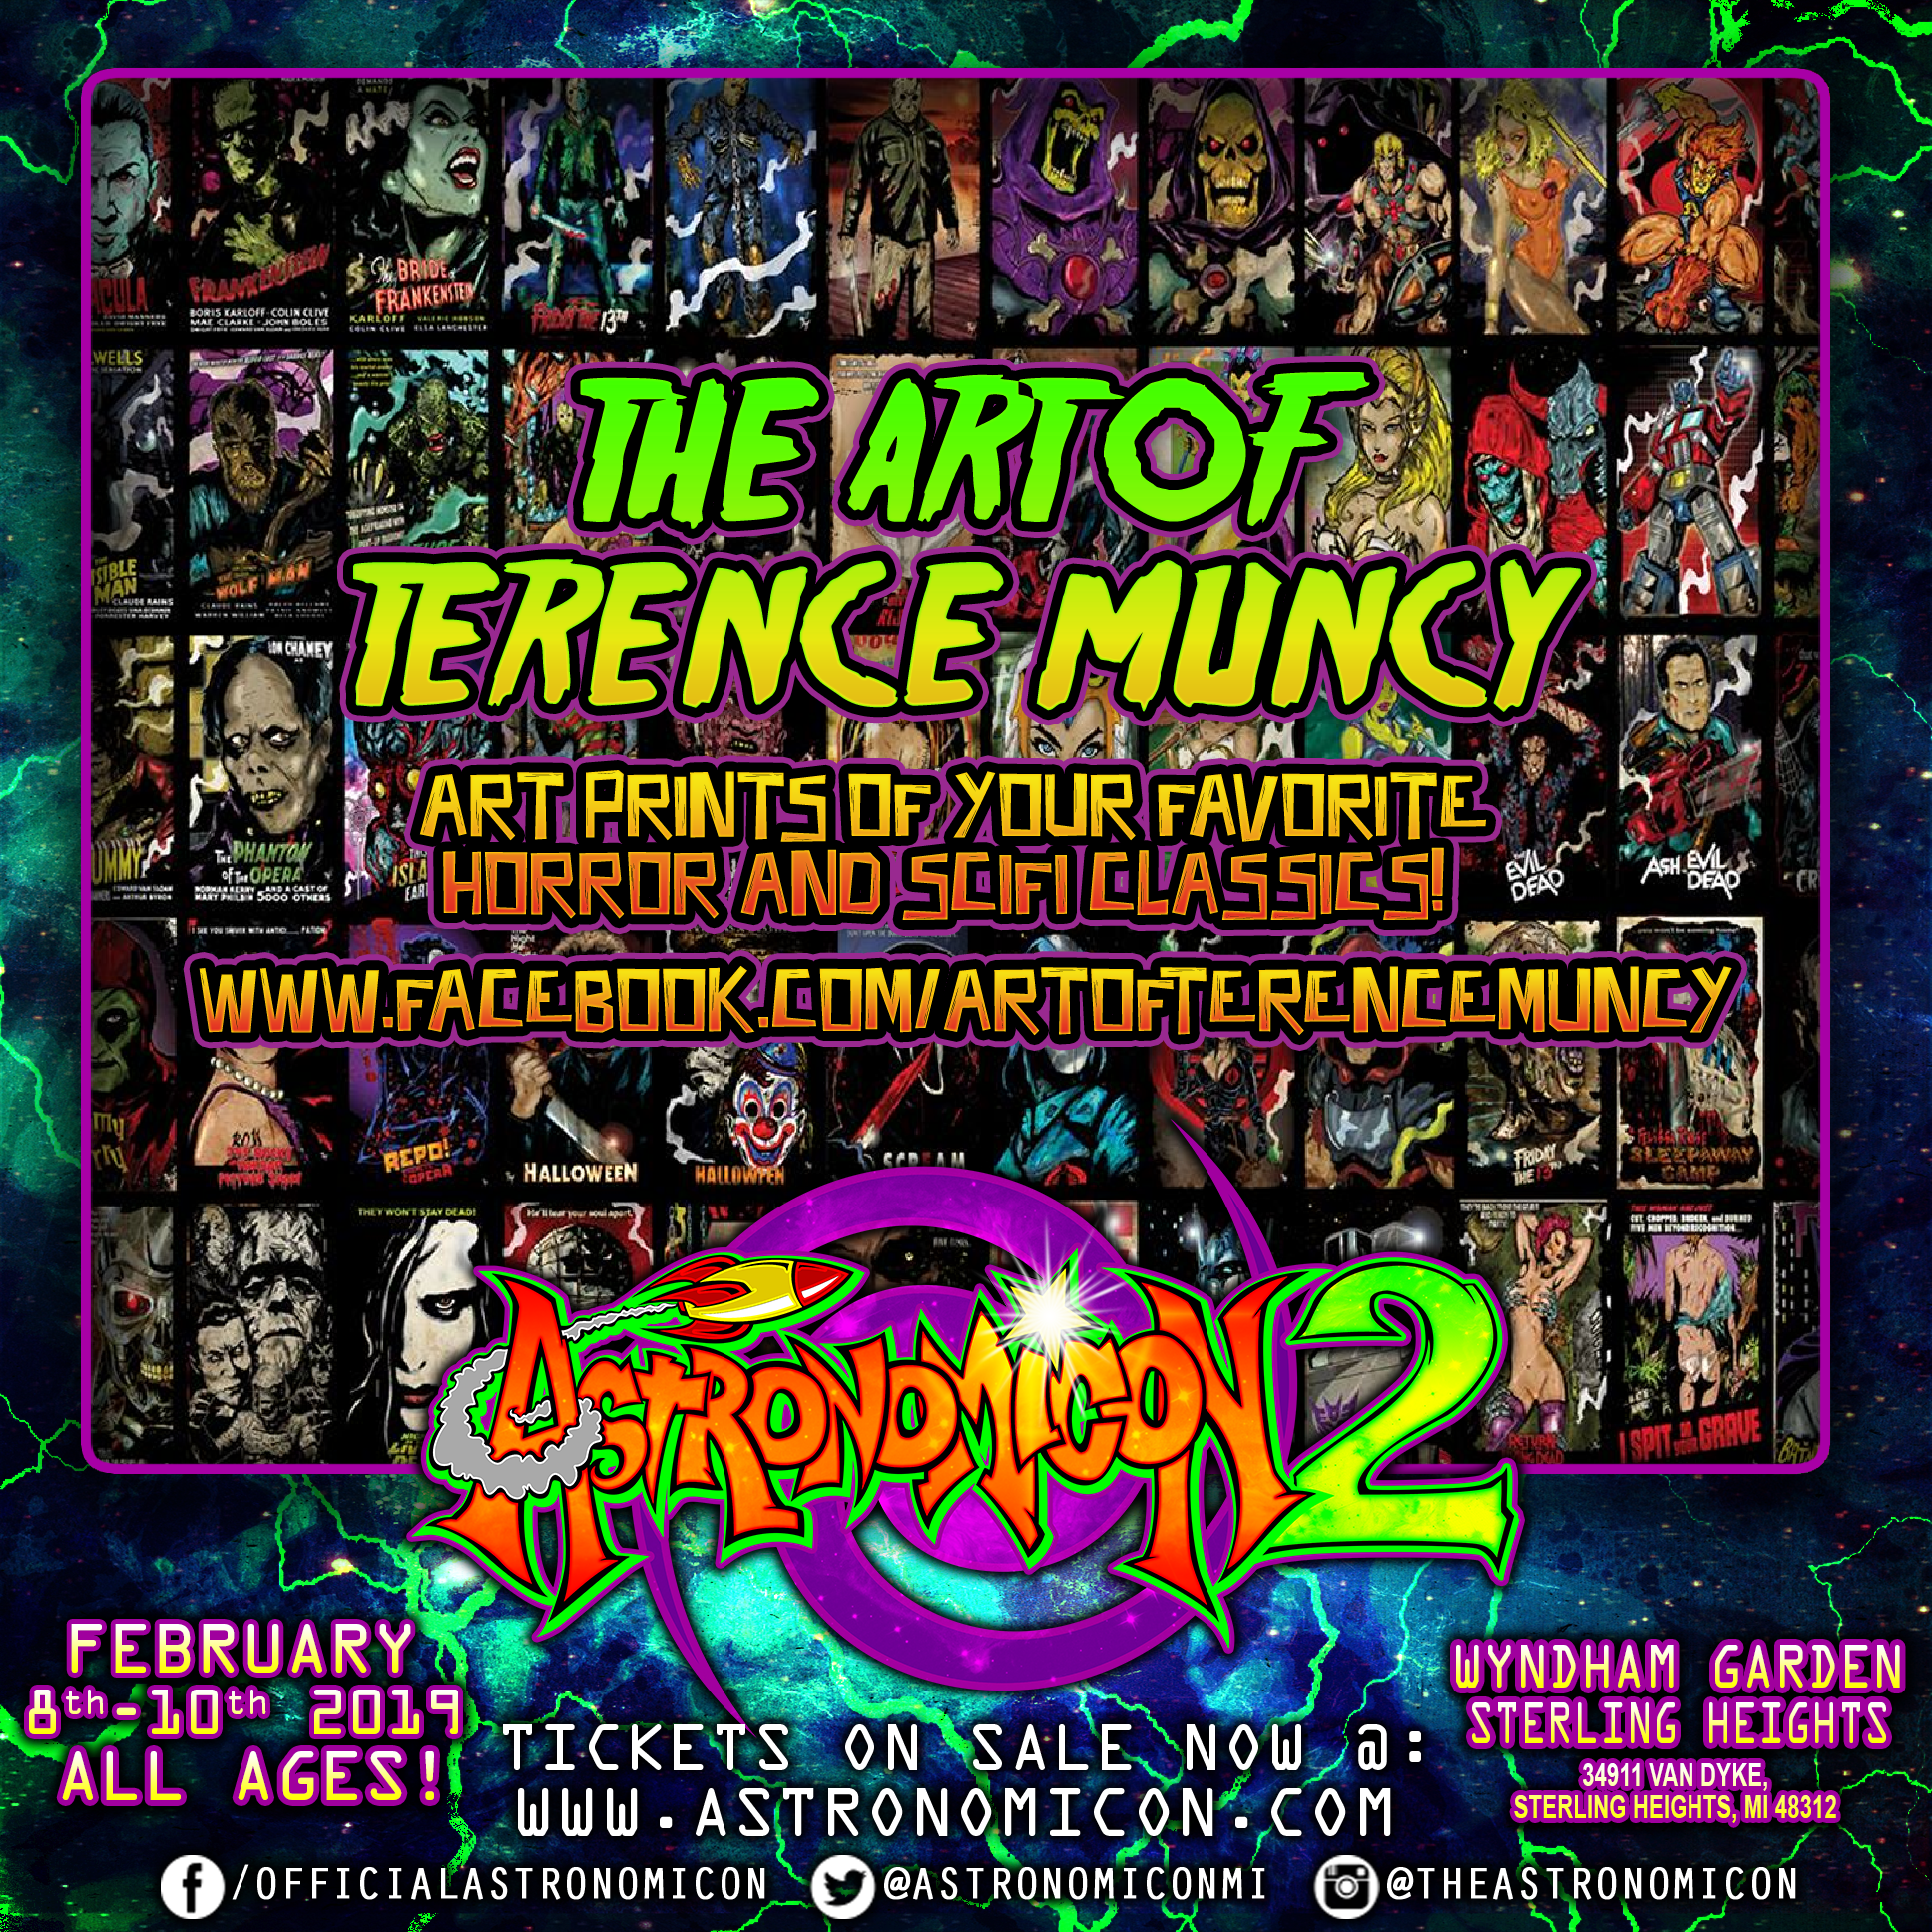 Astronomicon 2 Terrence Muncy IG Ad.png